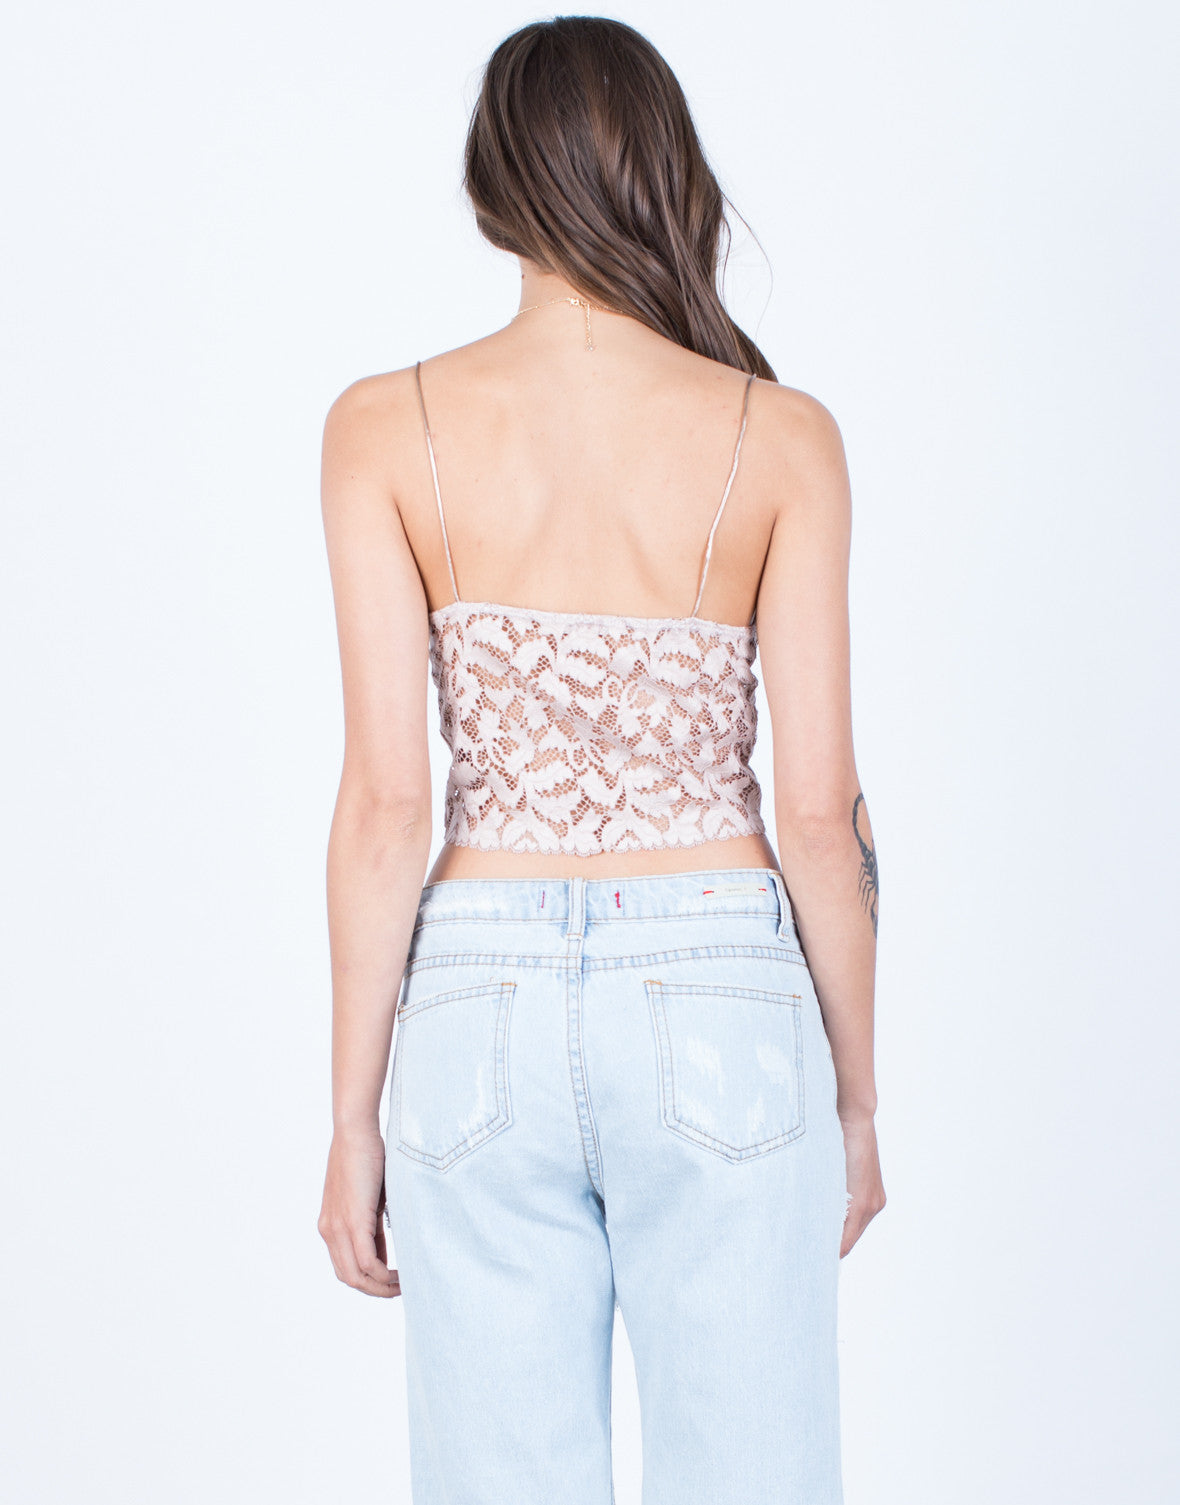 Back View of Cami Lace Crop Top